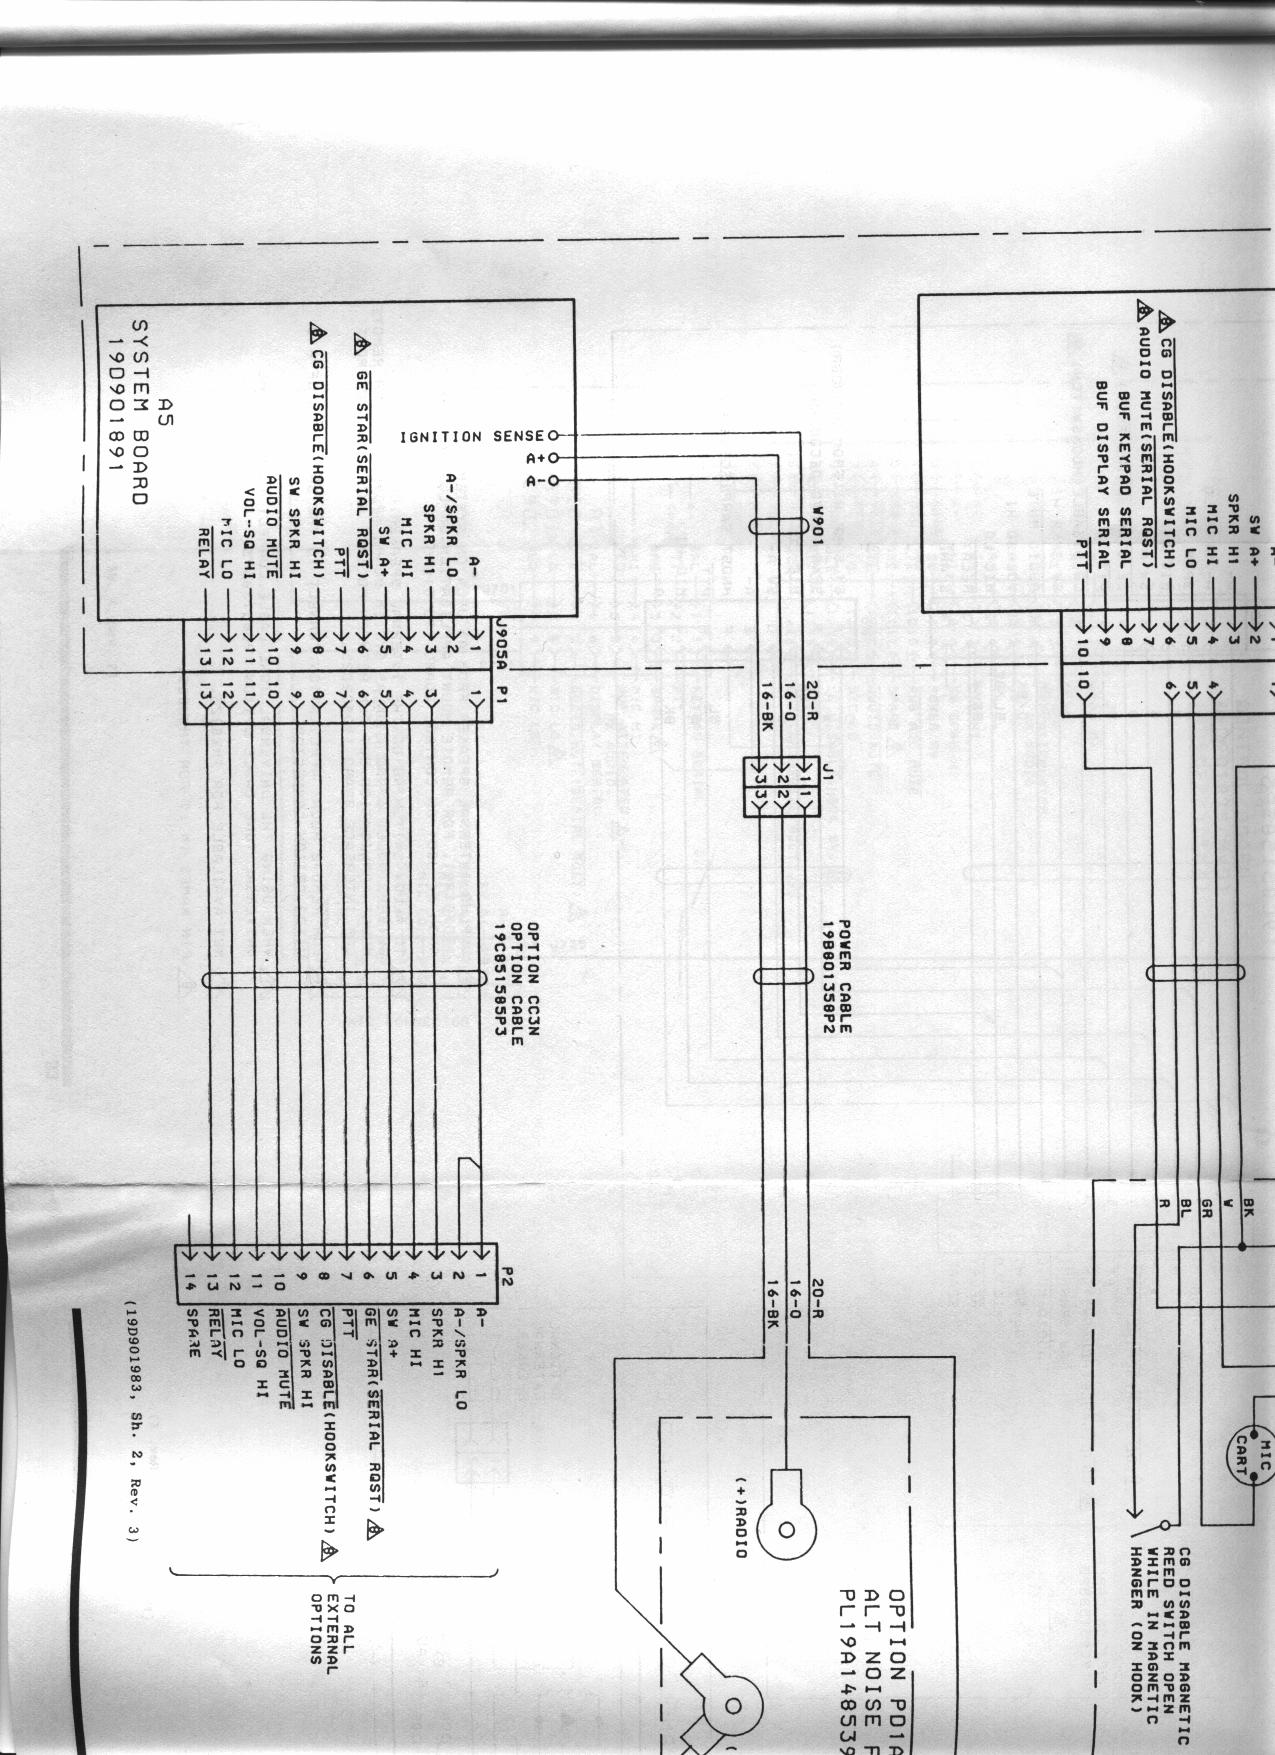 GE MVS acc cable goshen coach wiring diagrams goshen coach controls wiring diagram goshen coach wiring diagrams at bayanpartner.co